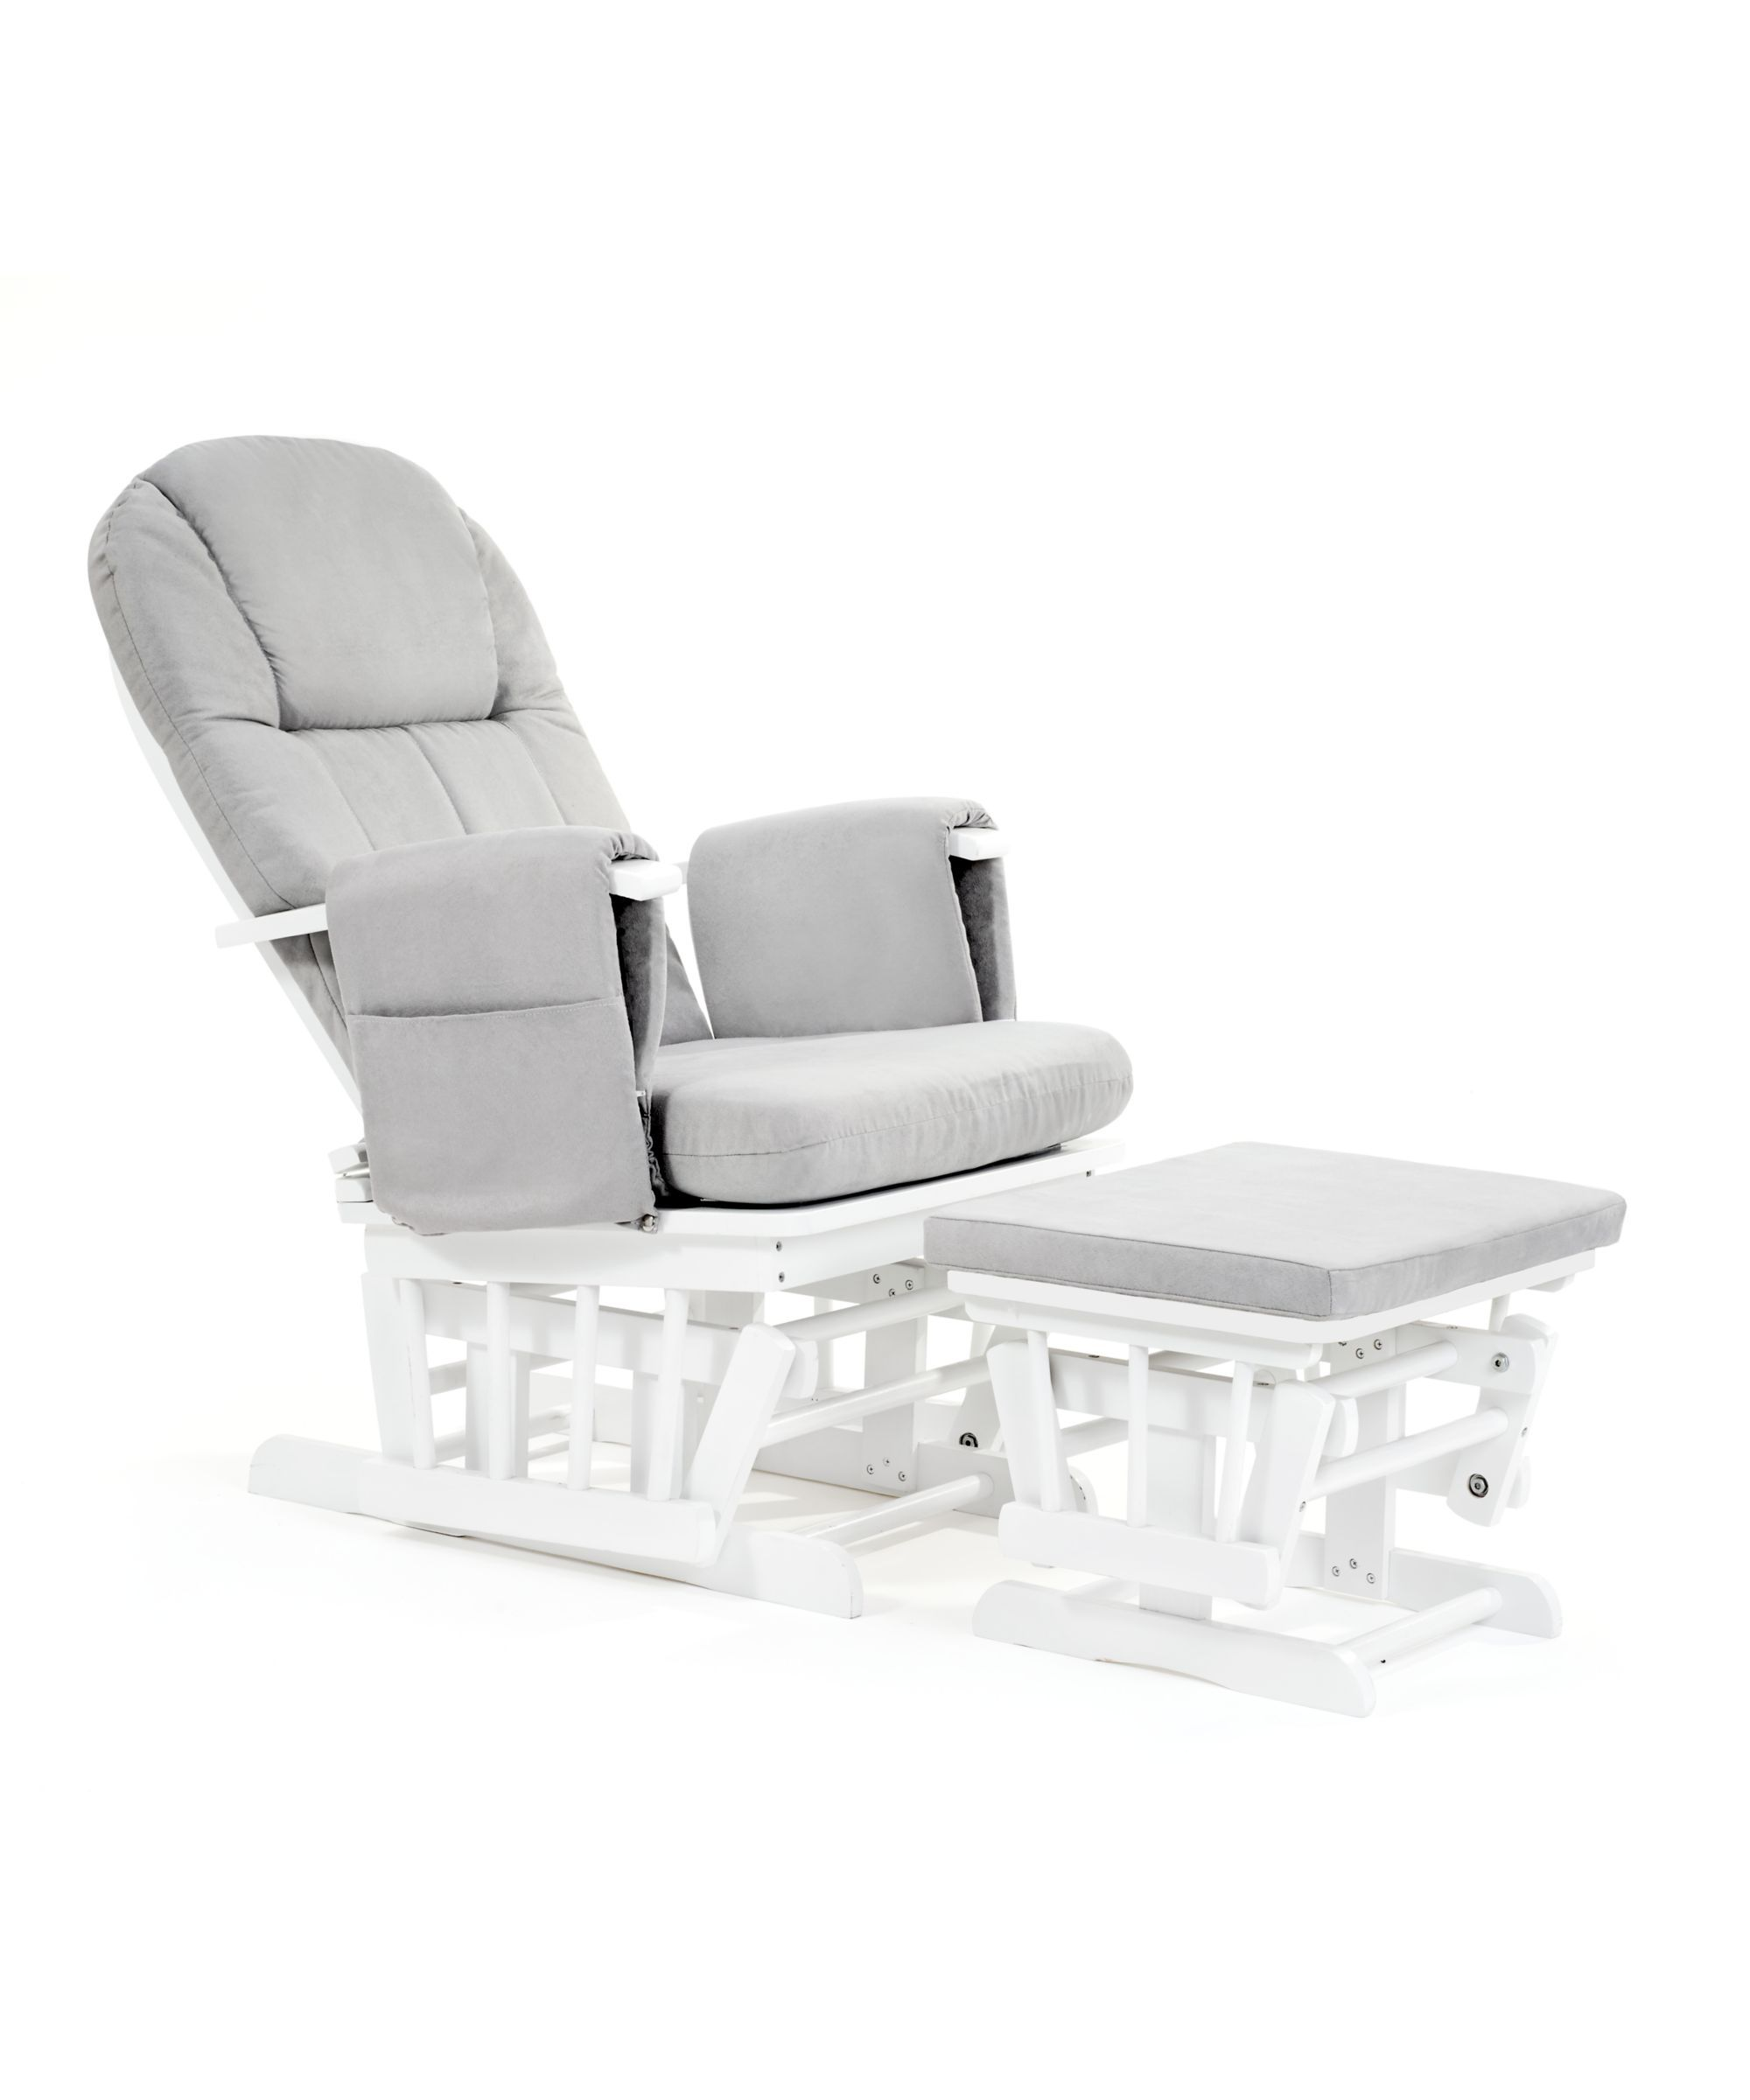 Mothercare Reclining Glider Chair White With Grey